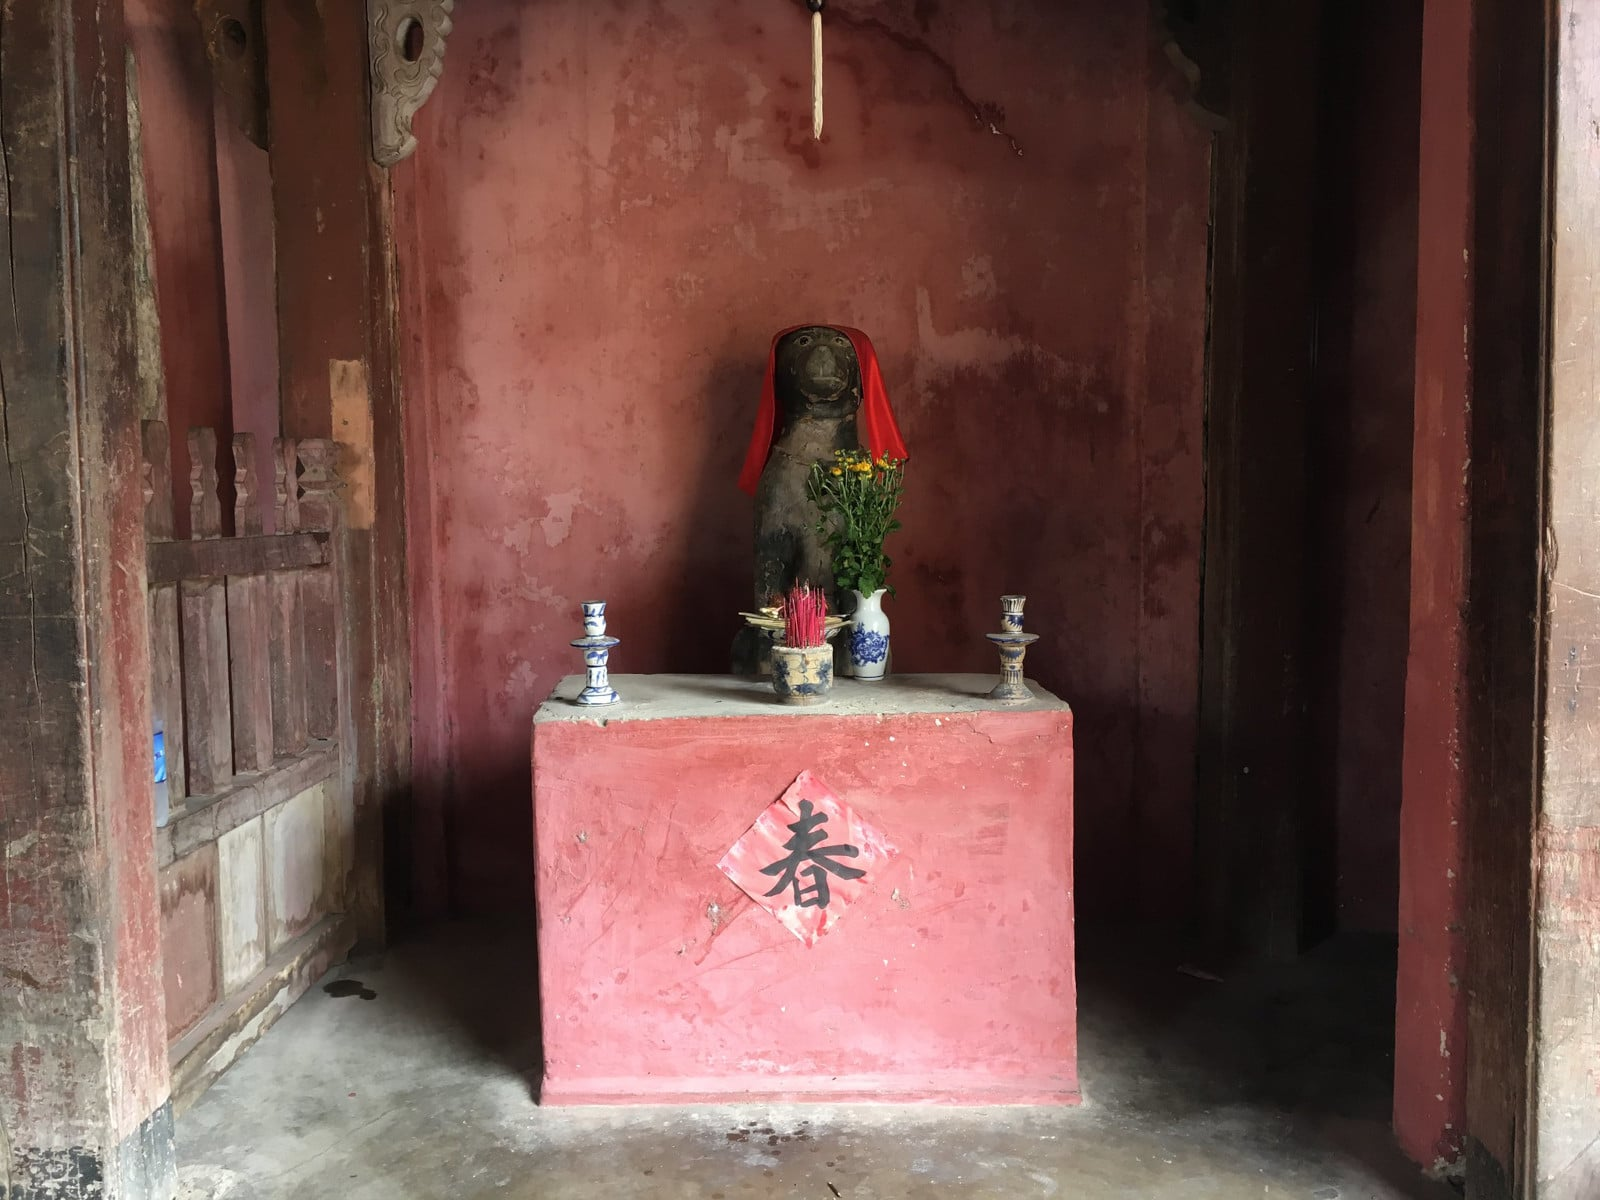 Image of the dog statue shrine at the Japanese Covered Bridge in Hoi An, Vietnam